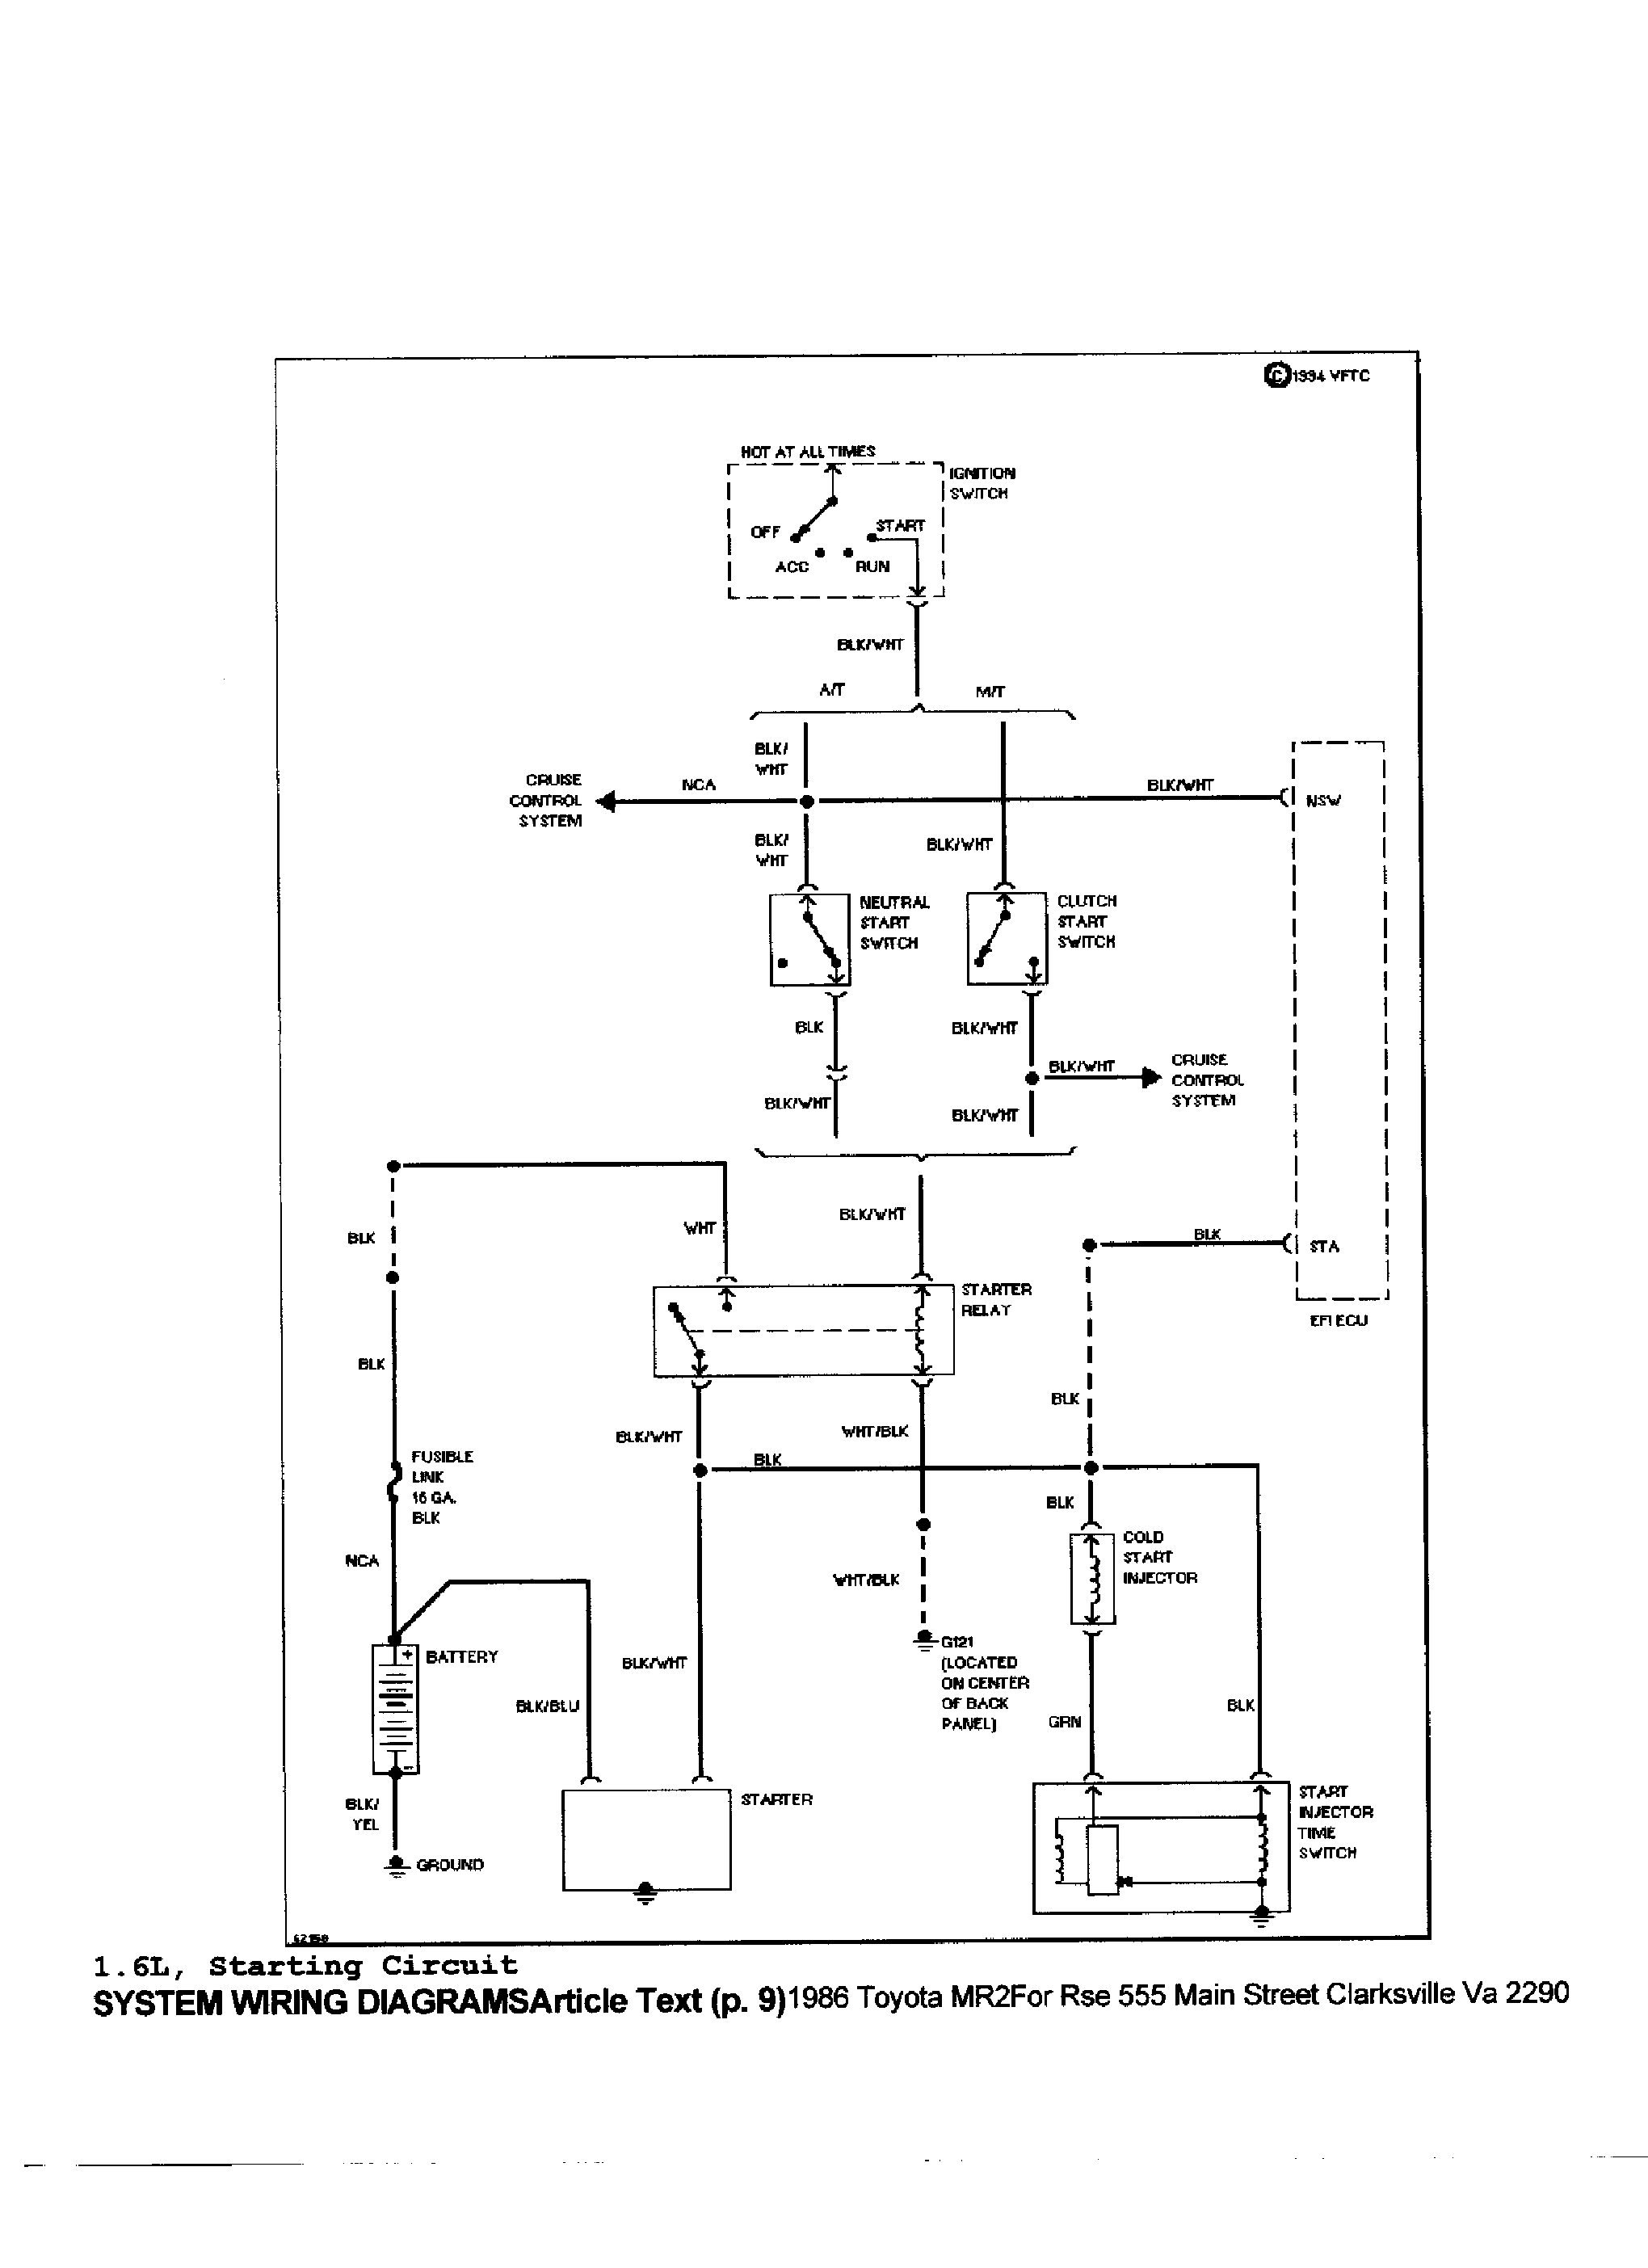 Toyota Mr2 Wiring Another Blog About Diagram 92 Camry Fuse Box 1986 Get Free Image 1987 1985